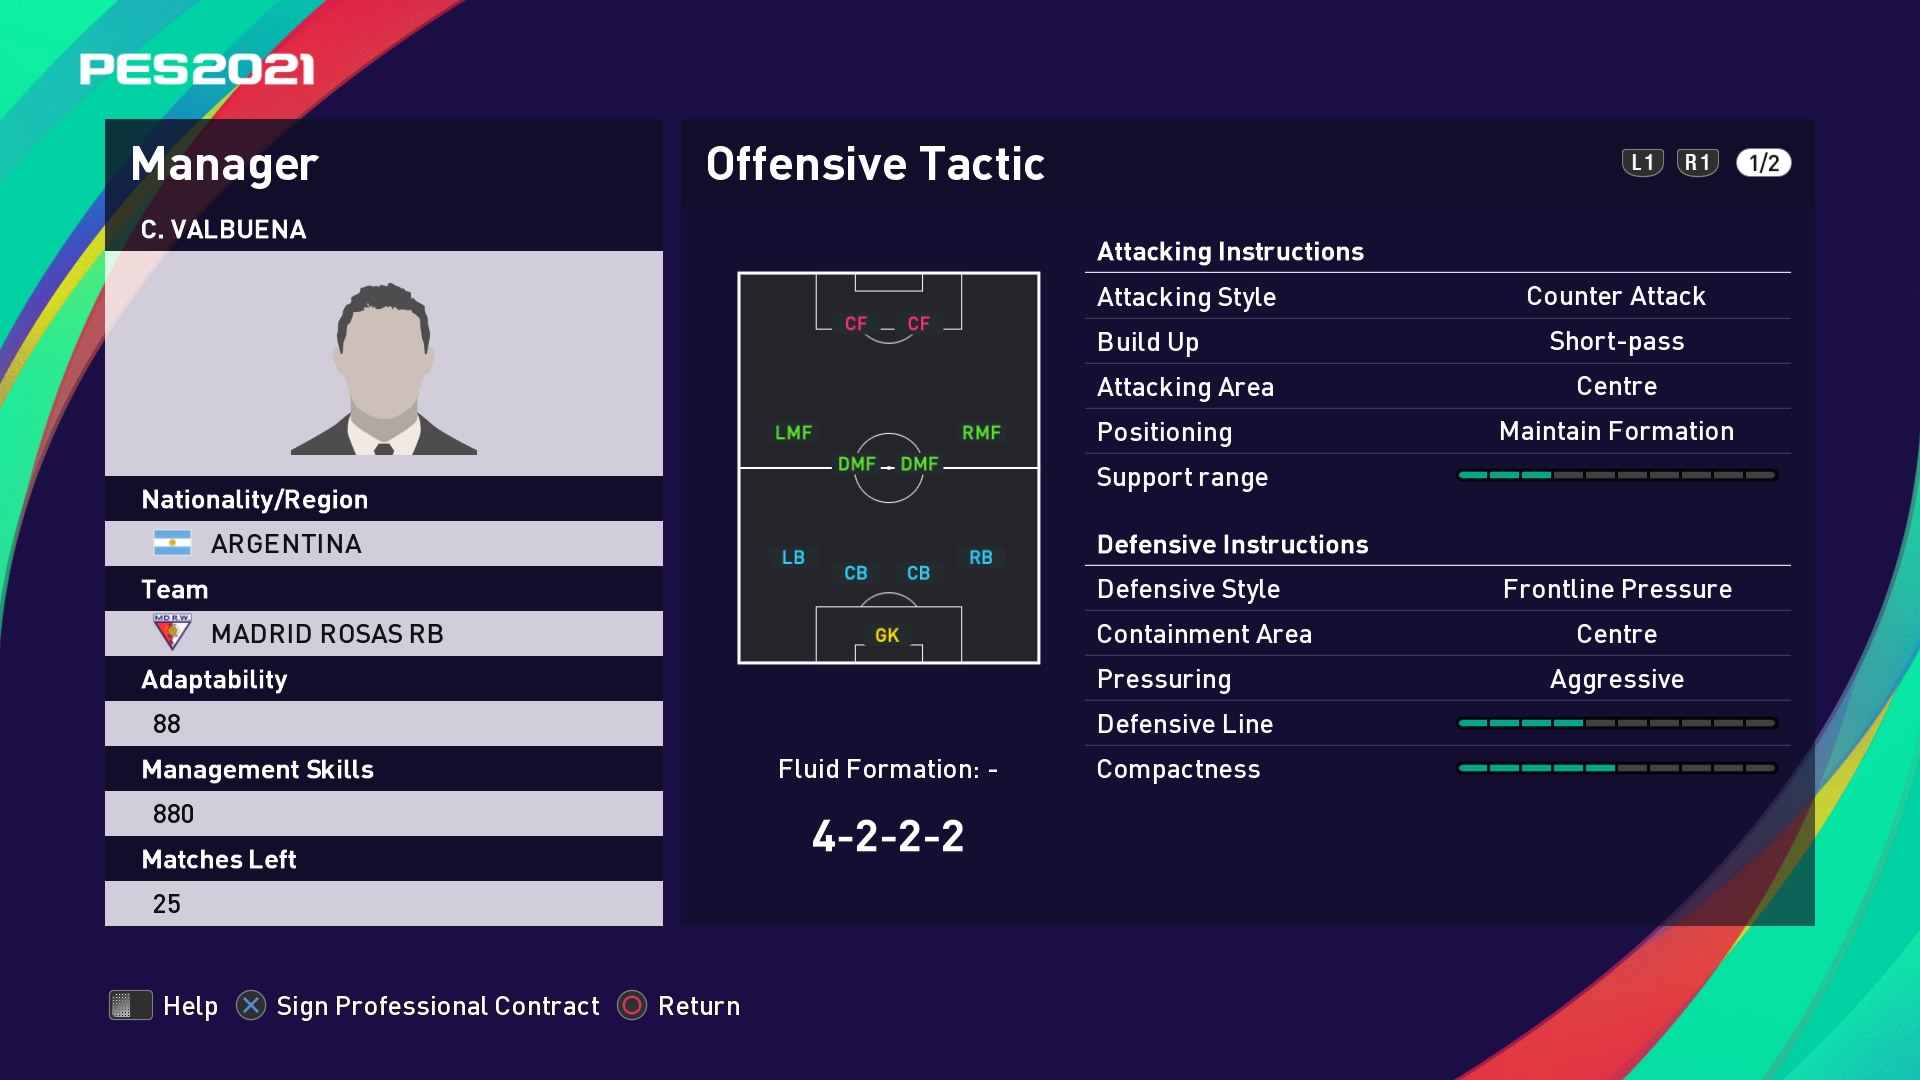 C. Valbuena (Diego Simeone) Offensive Tactic in PES 2021 myClub